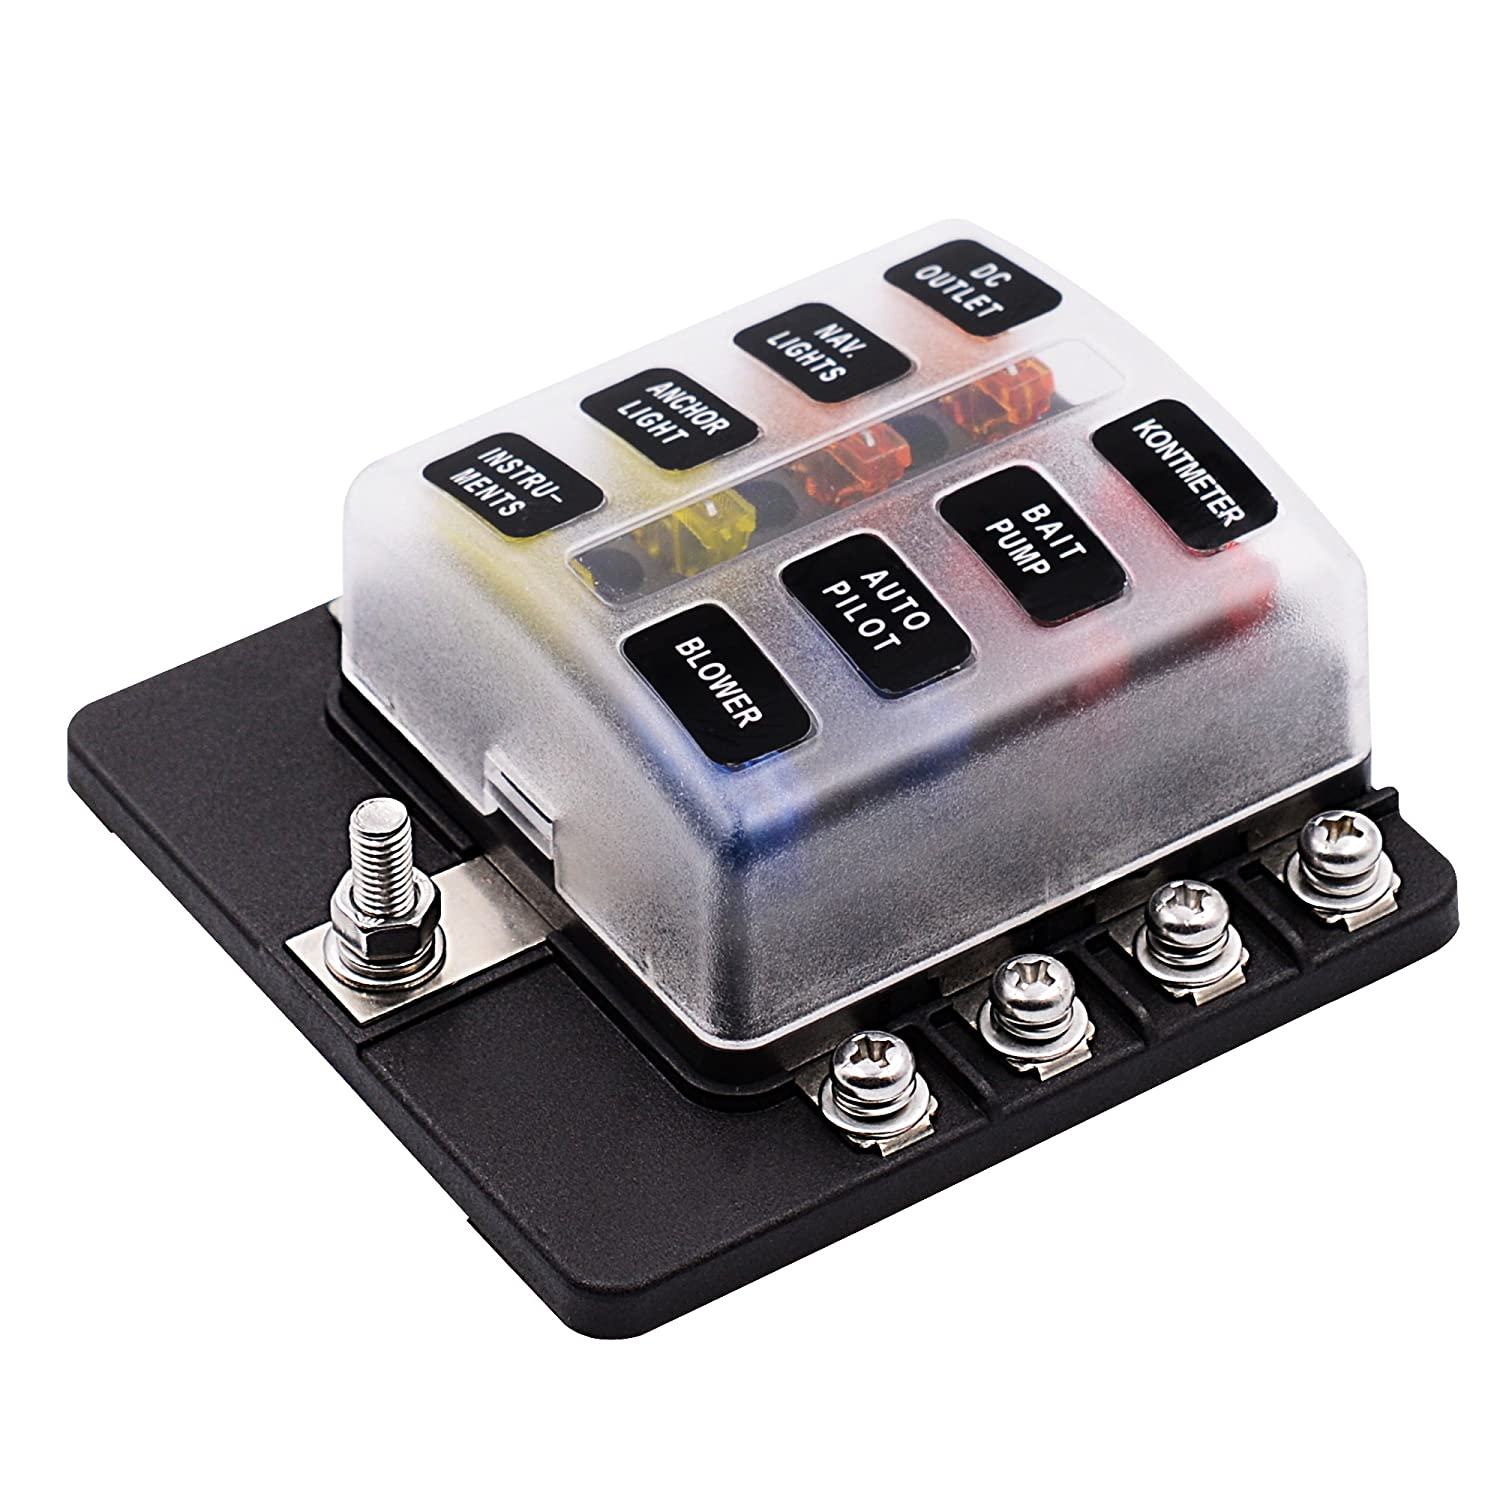 Topten Blade Fuse Box Waterproof Automotive Block With Motorcycle Electronic Protection Cover And Led Indicator For Car